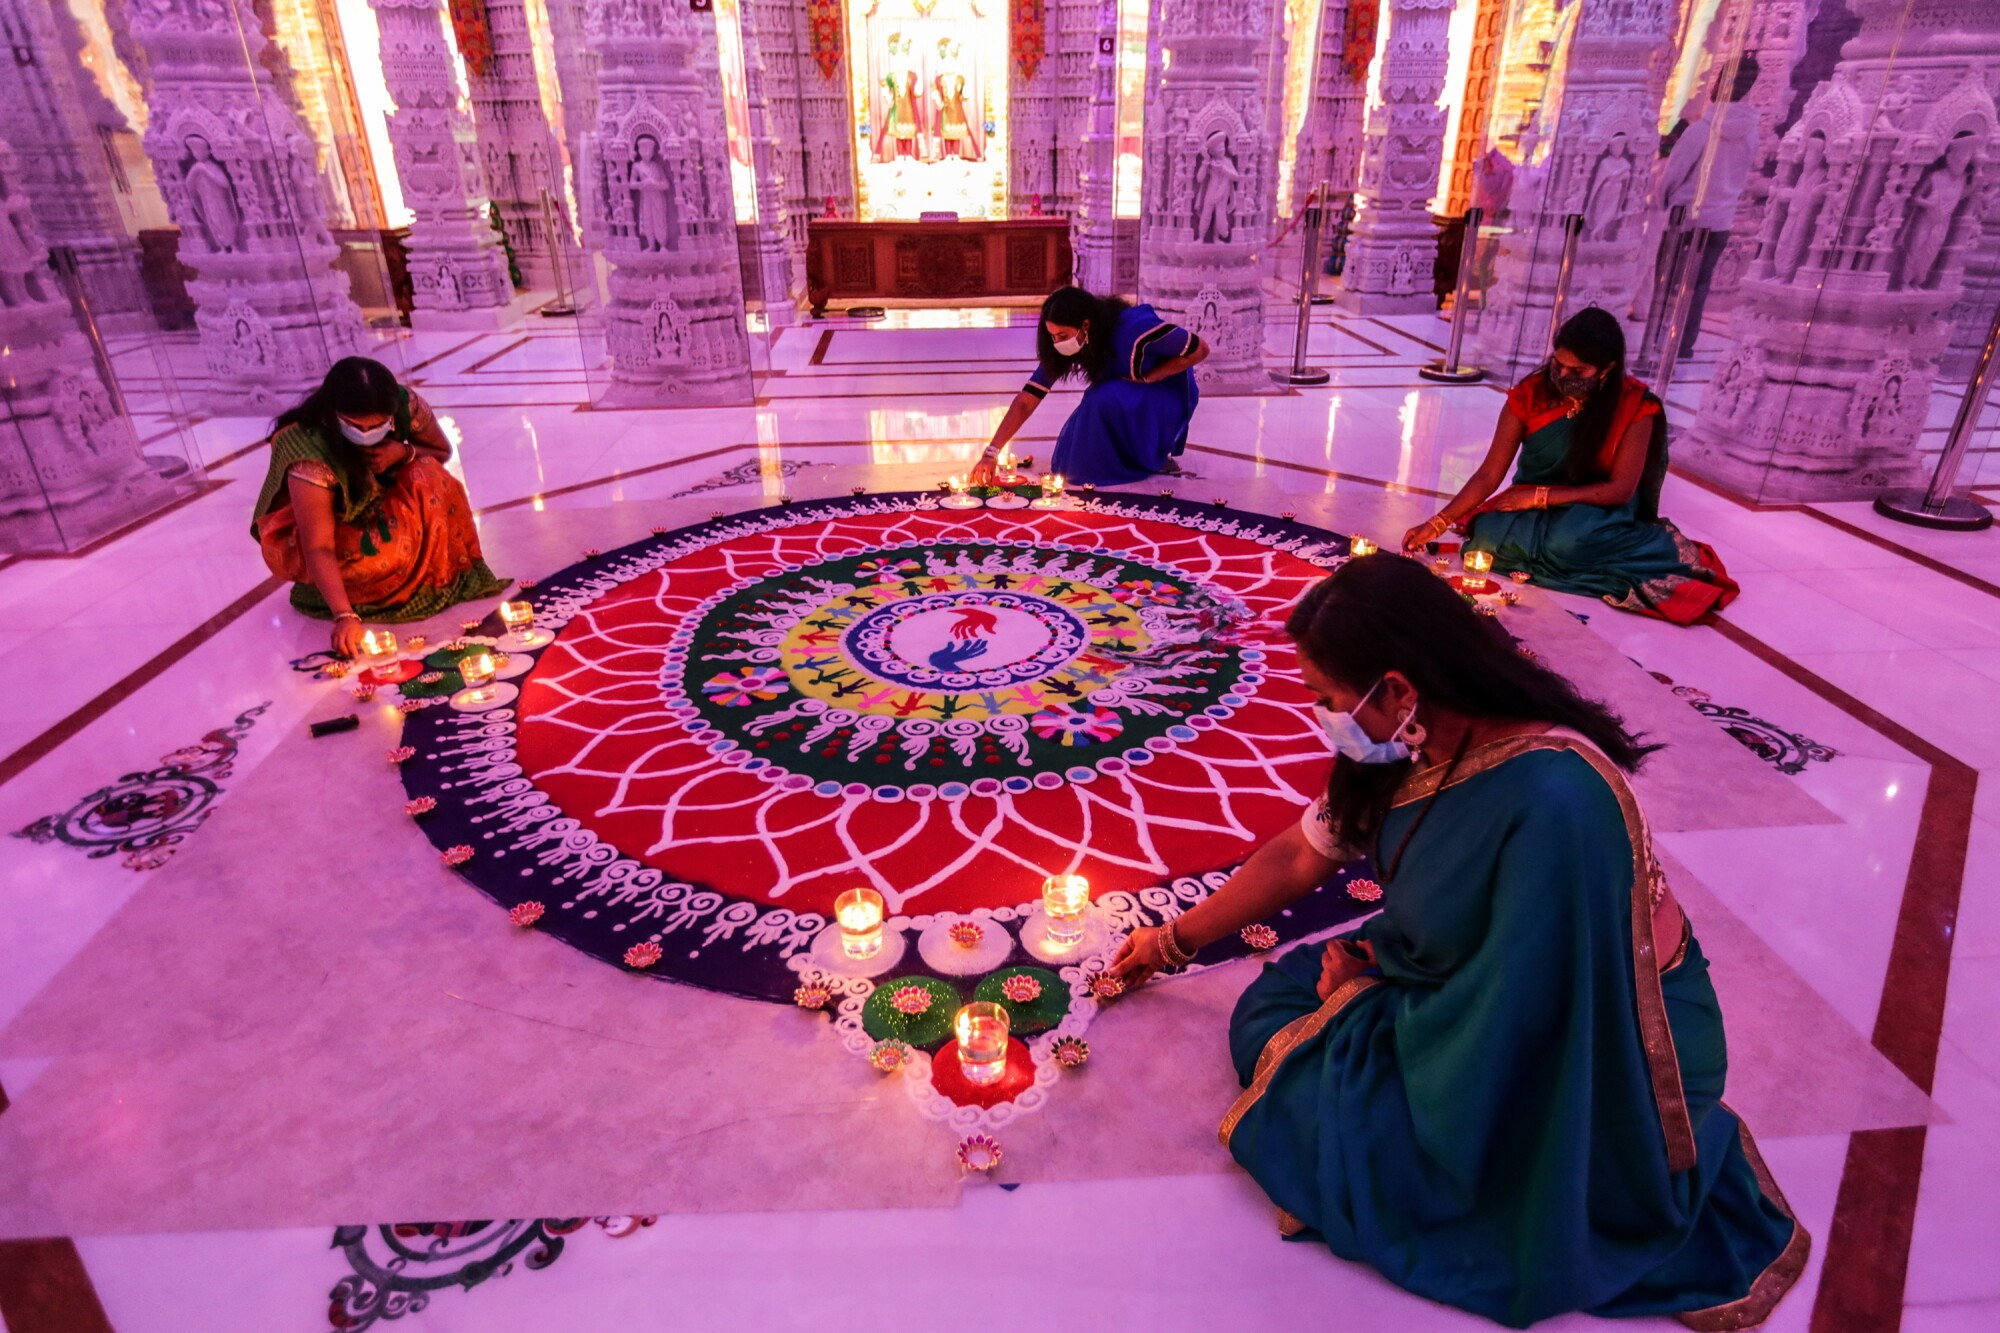 Women in traditional robes kneel around an intricate work of sand art inside a Hindu temple